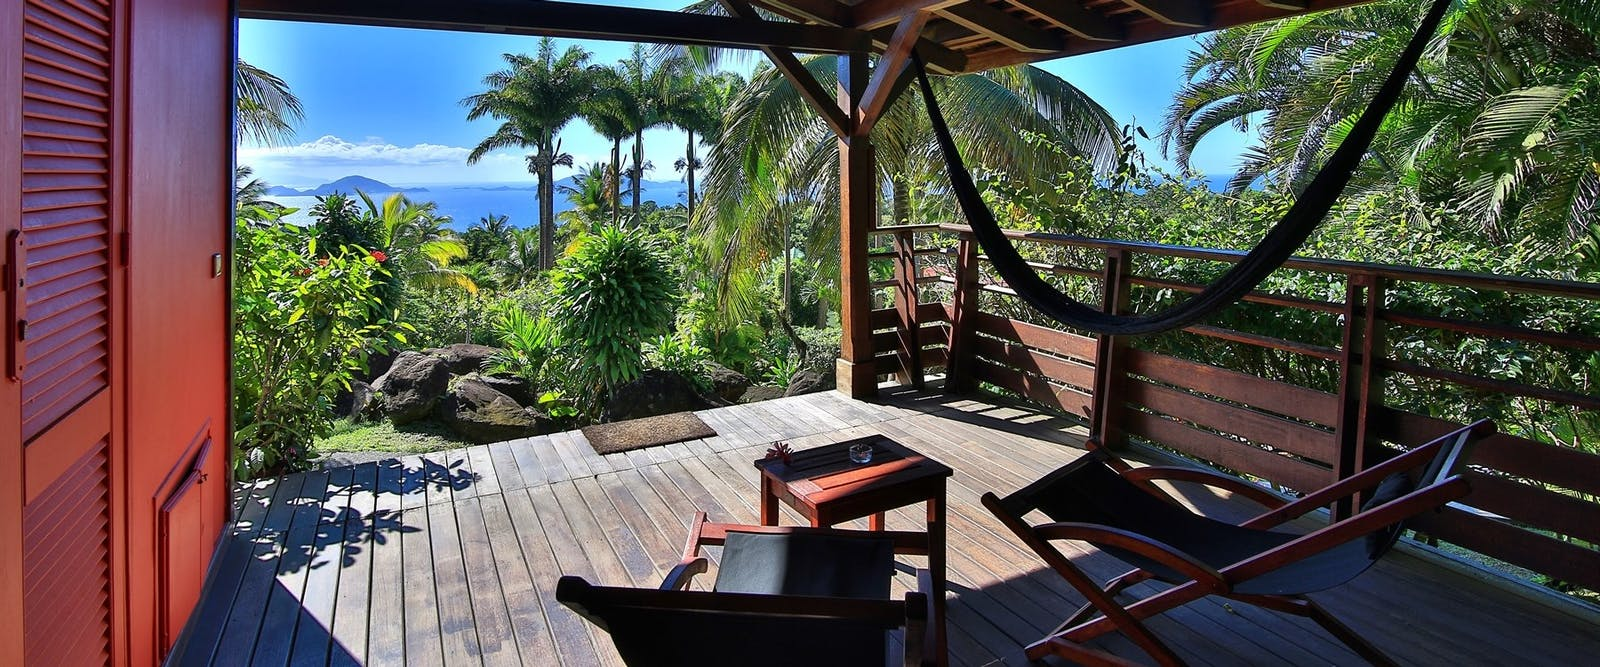 Cottage Terrace at Le Jardin Malanga Hotel, Guadeloupe